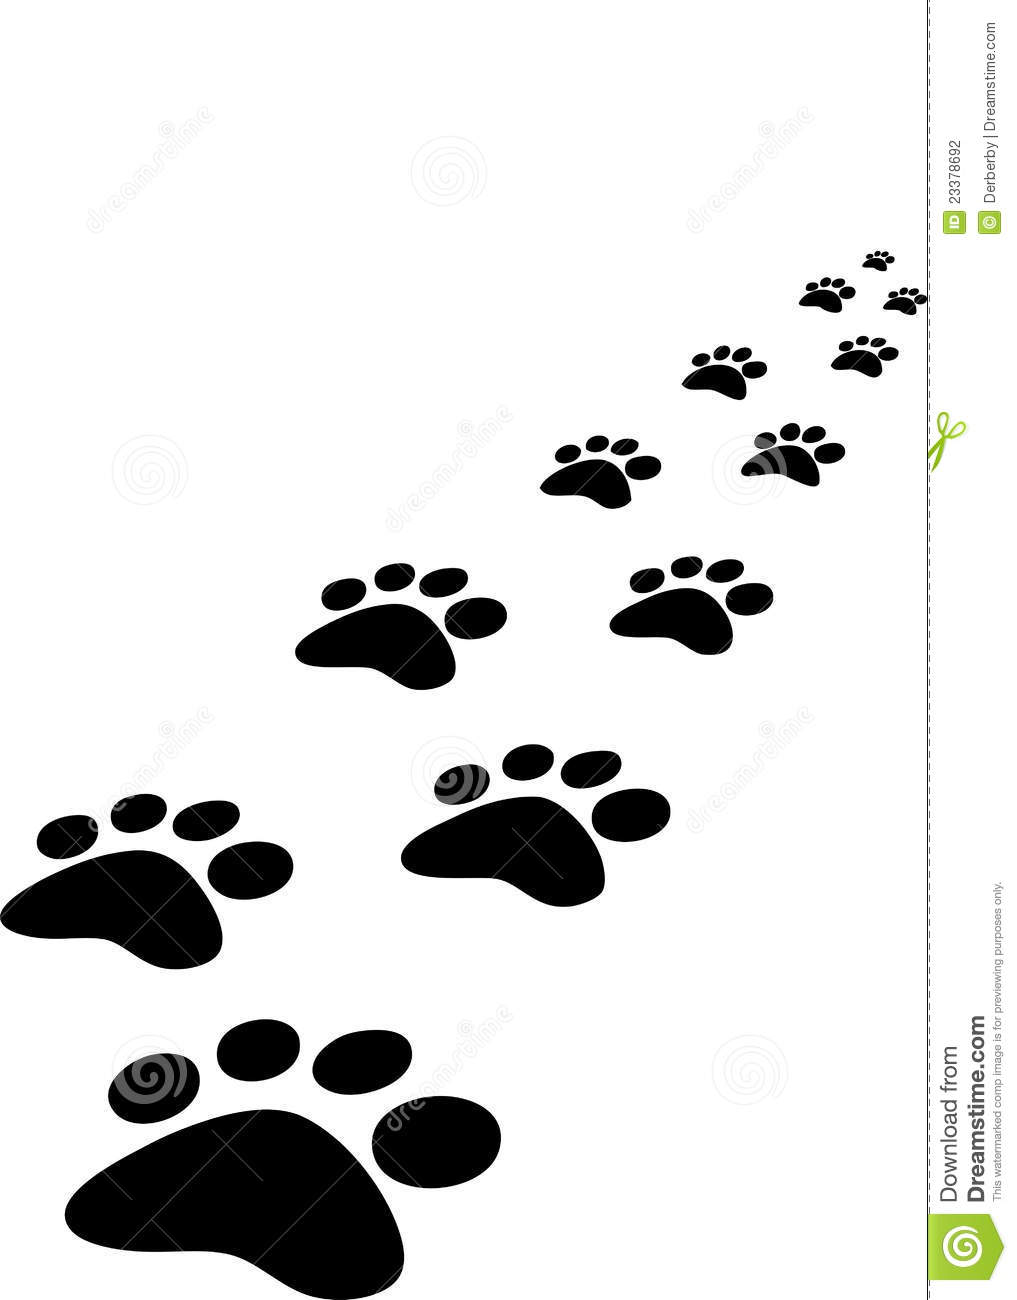 Trace of dogs